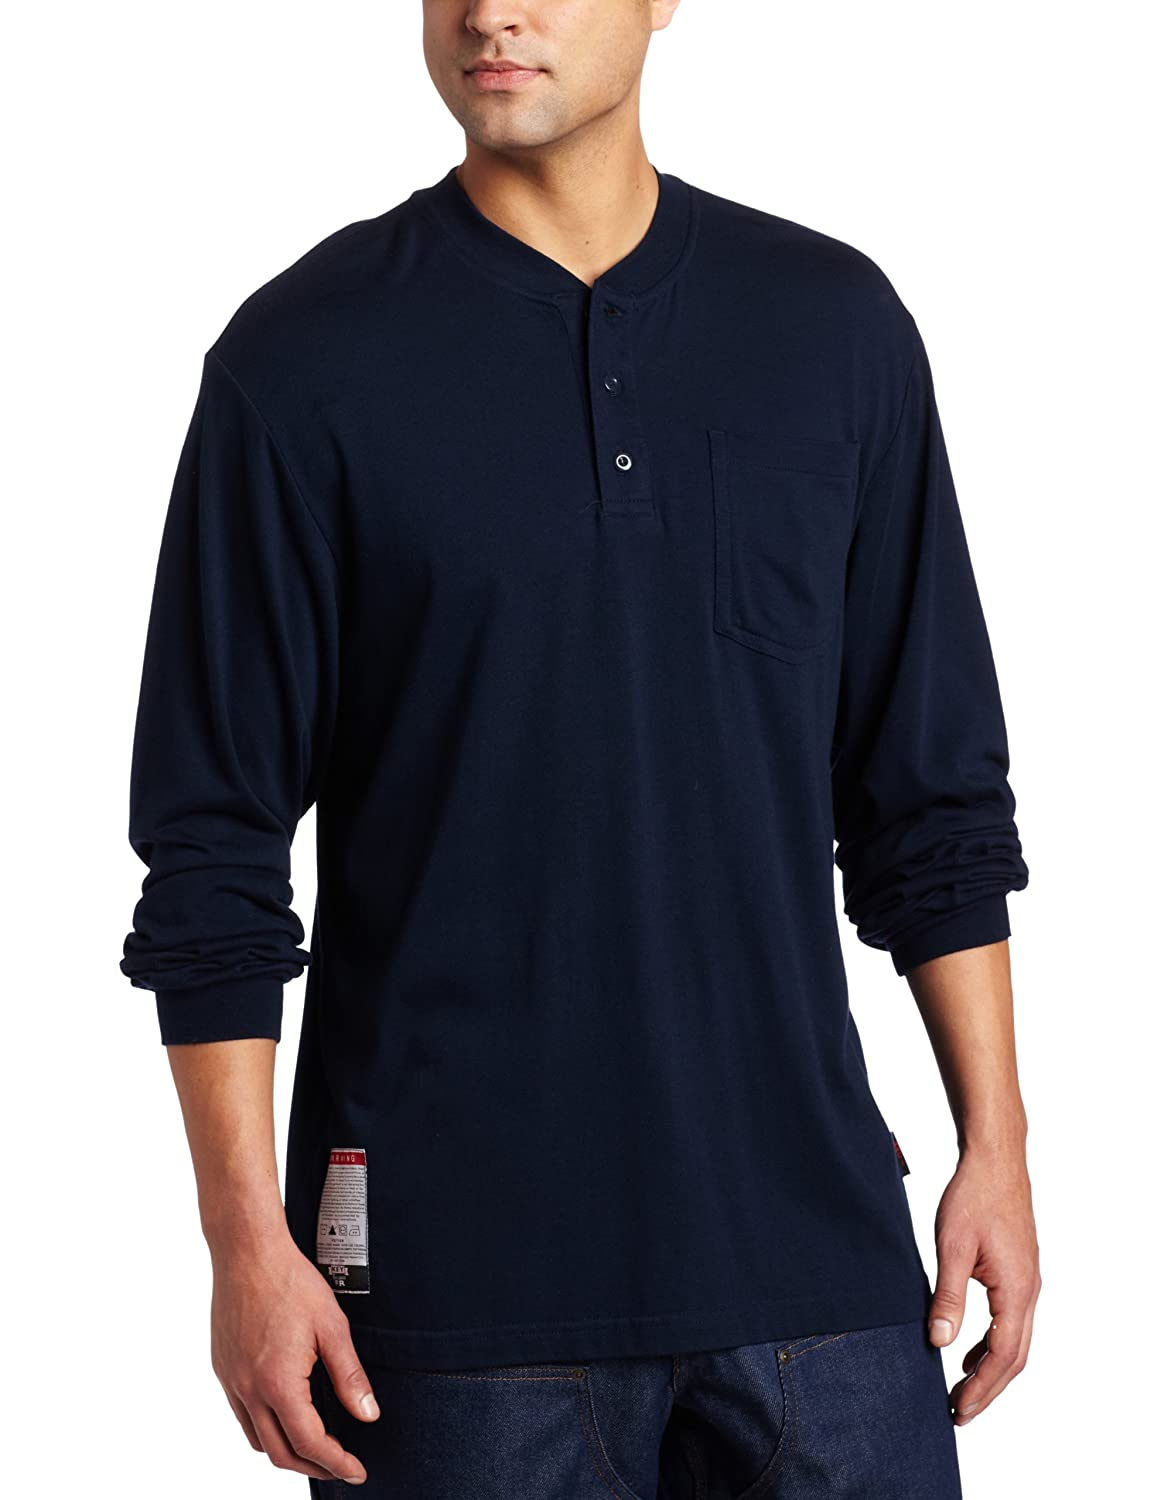 Key Apparel Men's Flame Resistant Long Sleeve Pocket Henley Tee Shirt 855